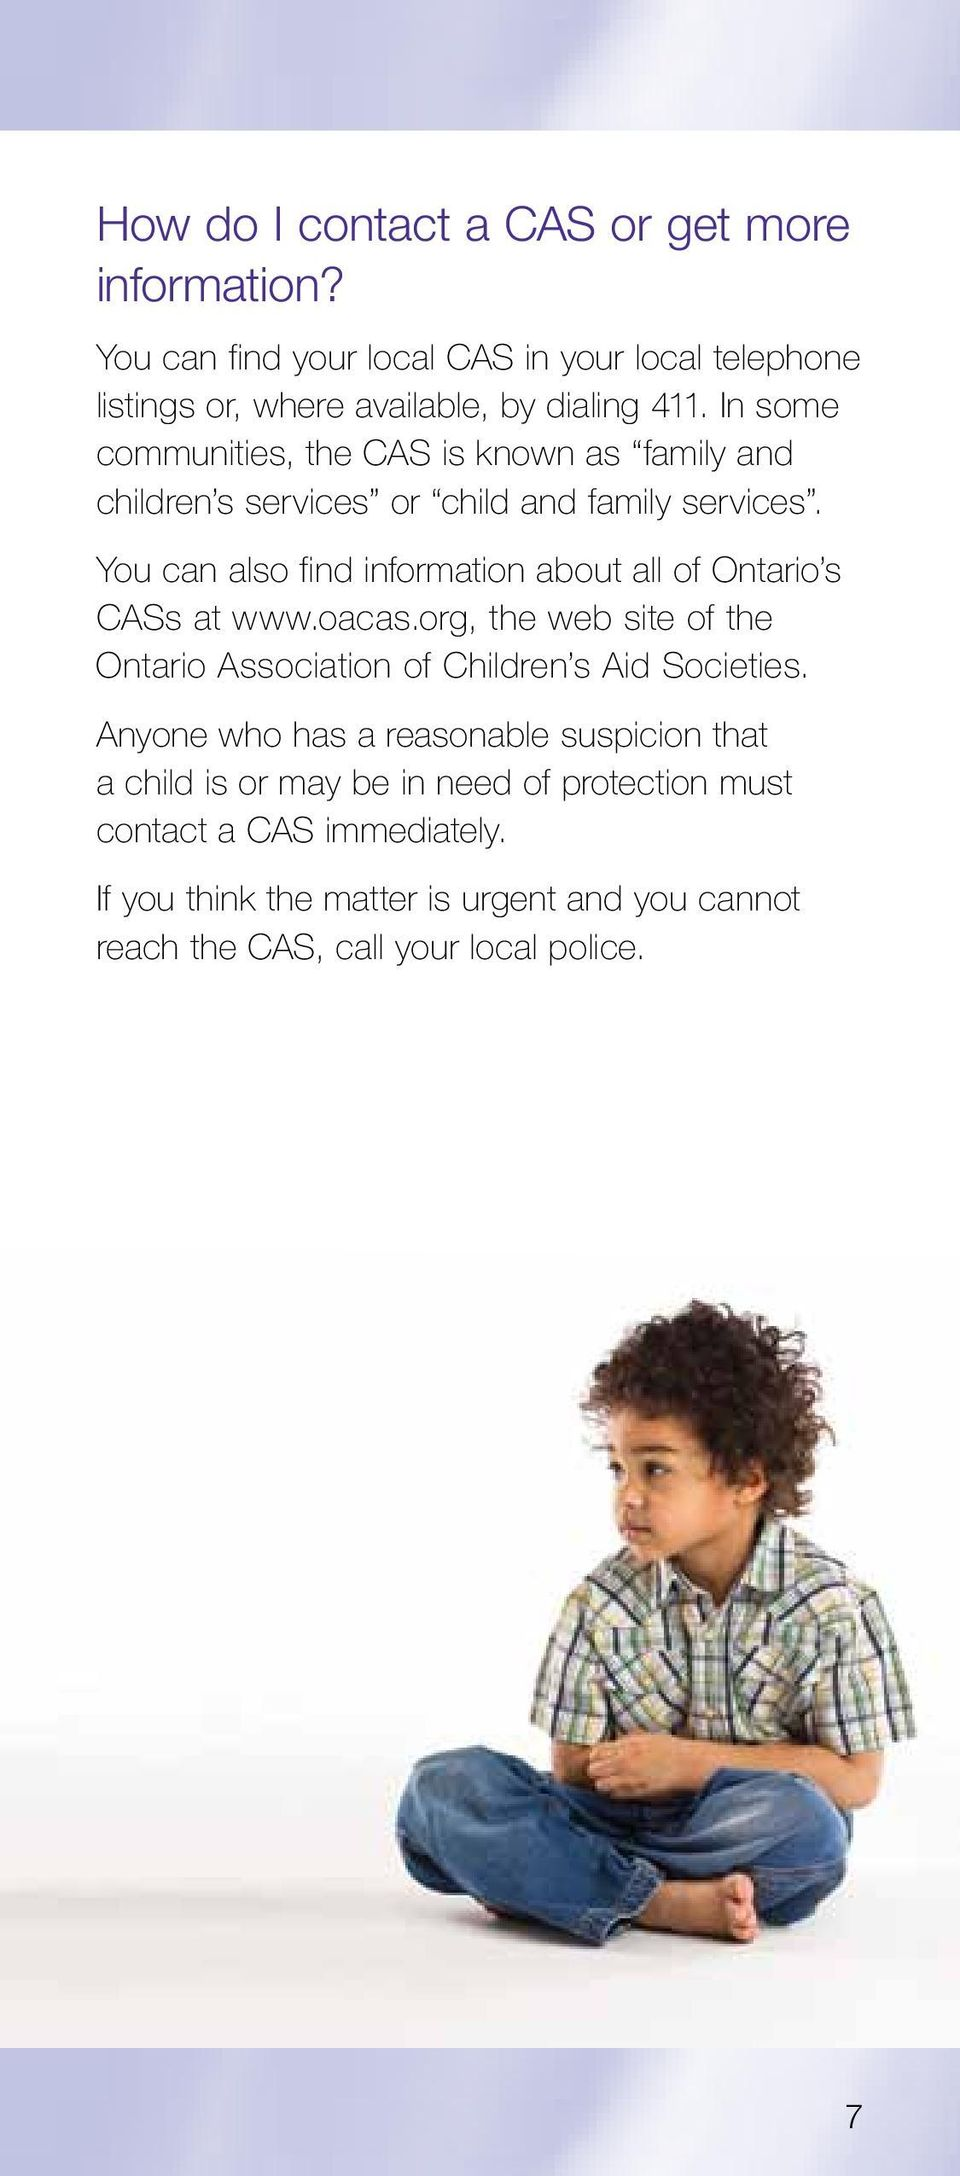 You can also find information about all of Ontario s CASs at www.oacas.org, the web site of the Ontario Association of Children s Aid Societies.